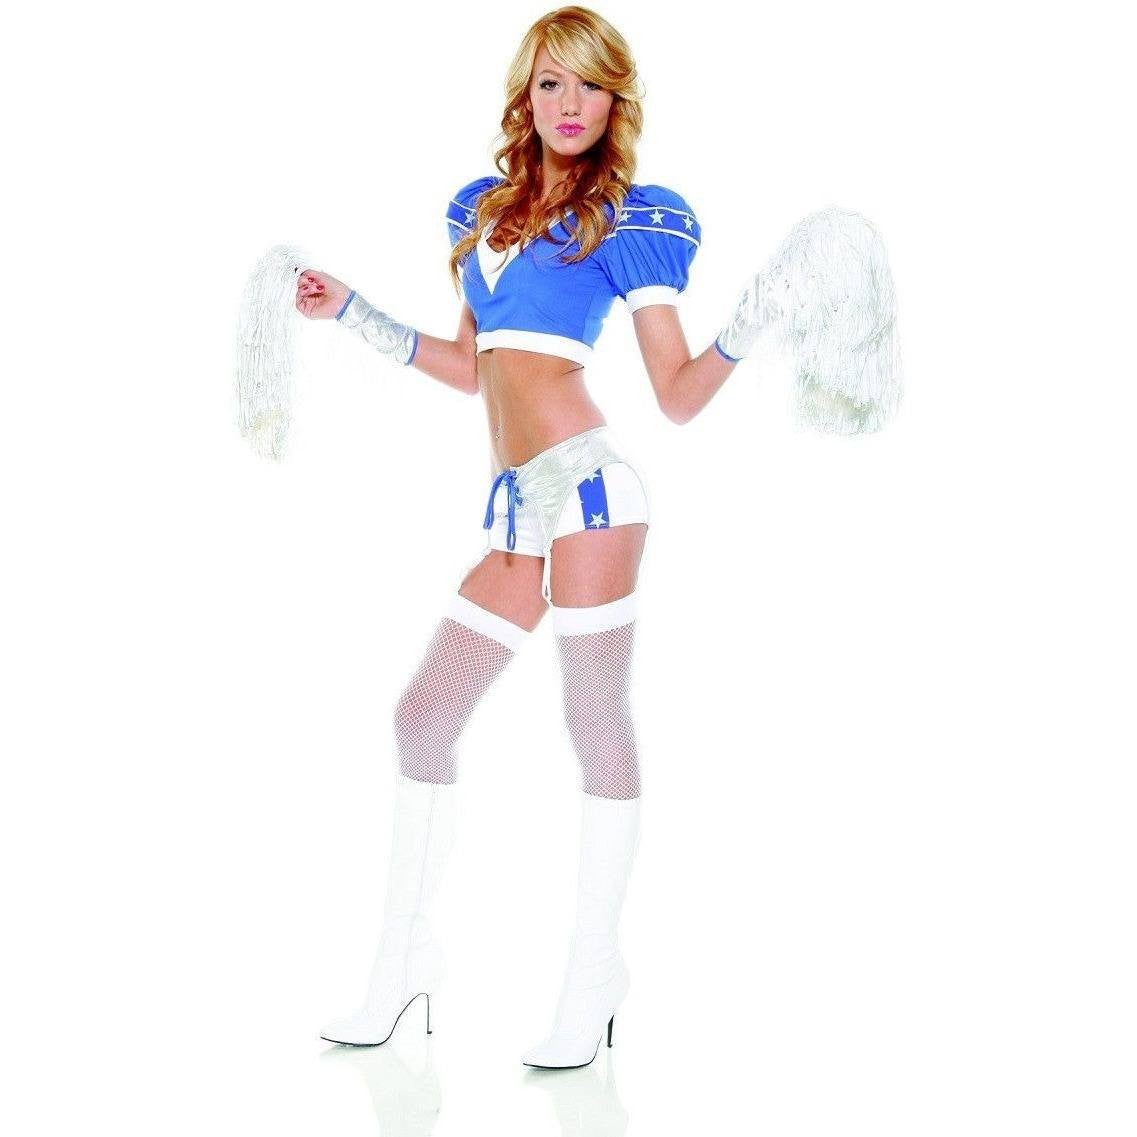 Cheerleader inspired costume for <span class=money>€29.95 EUR</span> at Flirtywomen